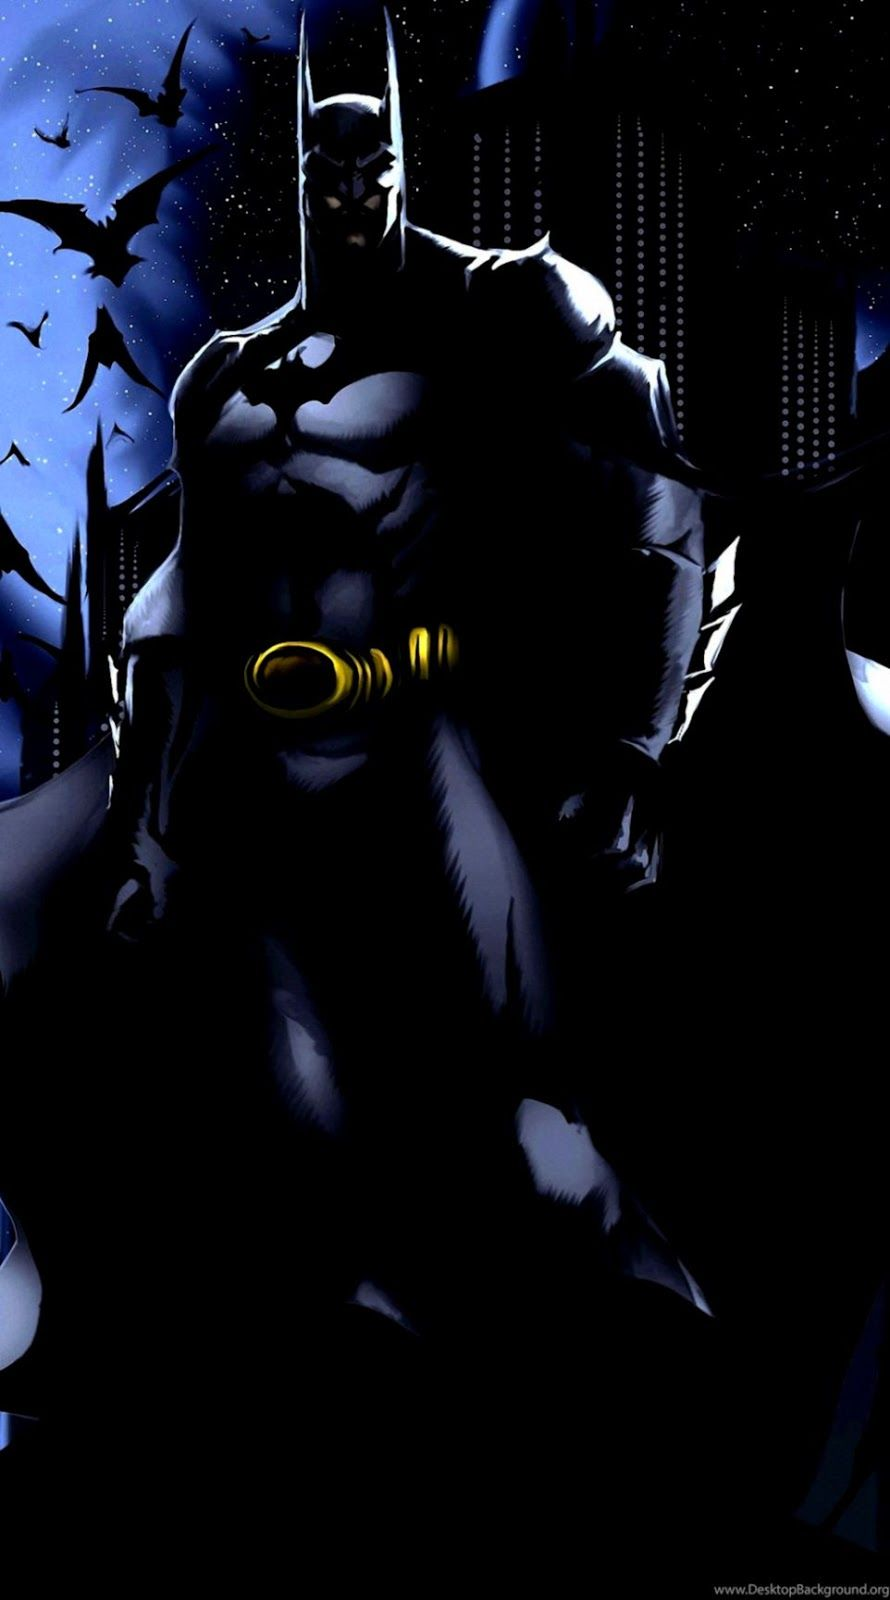 Animated Batman Iphone Wallpapers Top Free Animated Batman